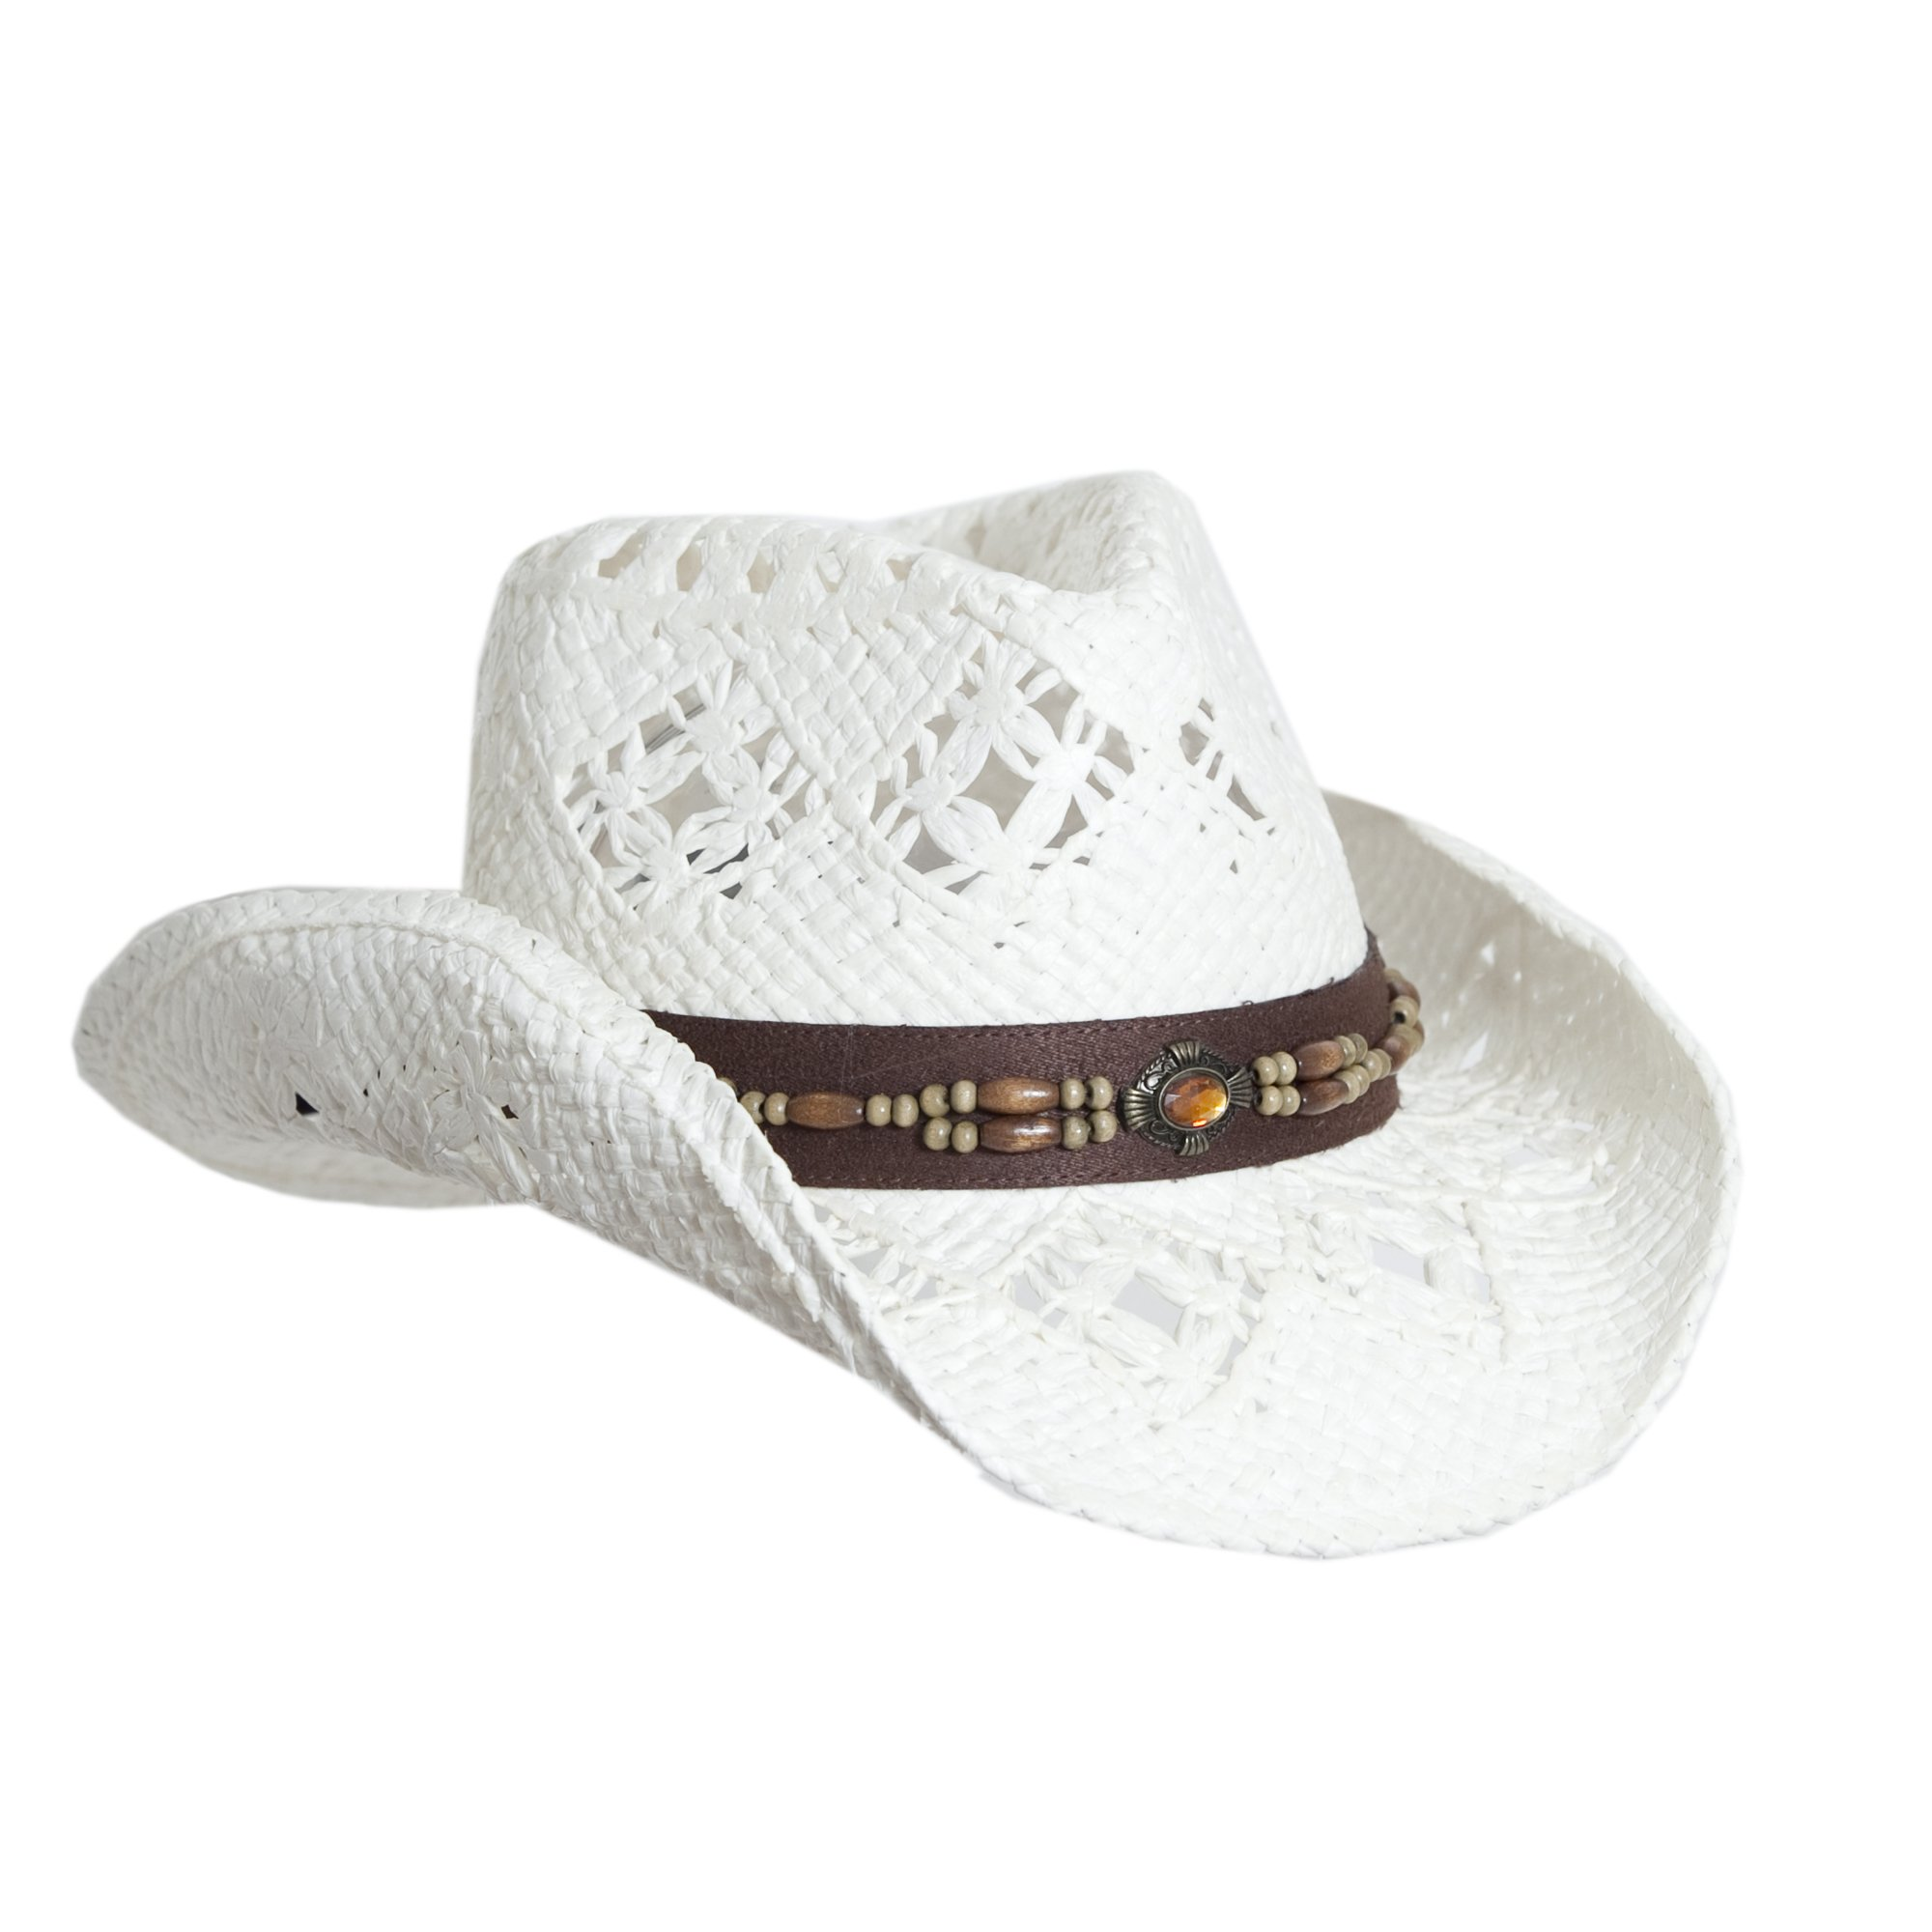 Vamuss White Straw Cowboy Hat W/Vegan Leather Band & Beads, Shapeable Brim